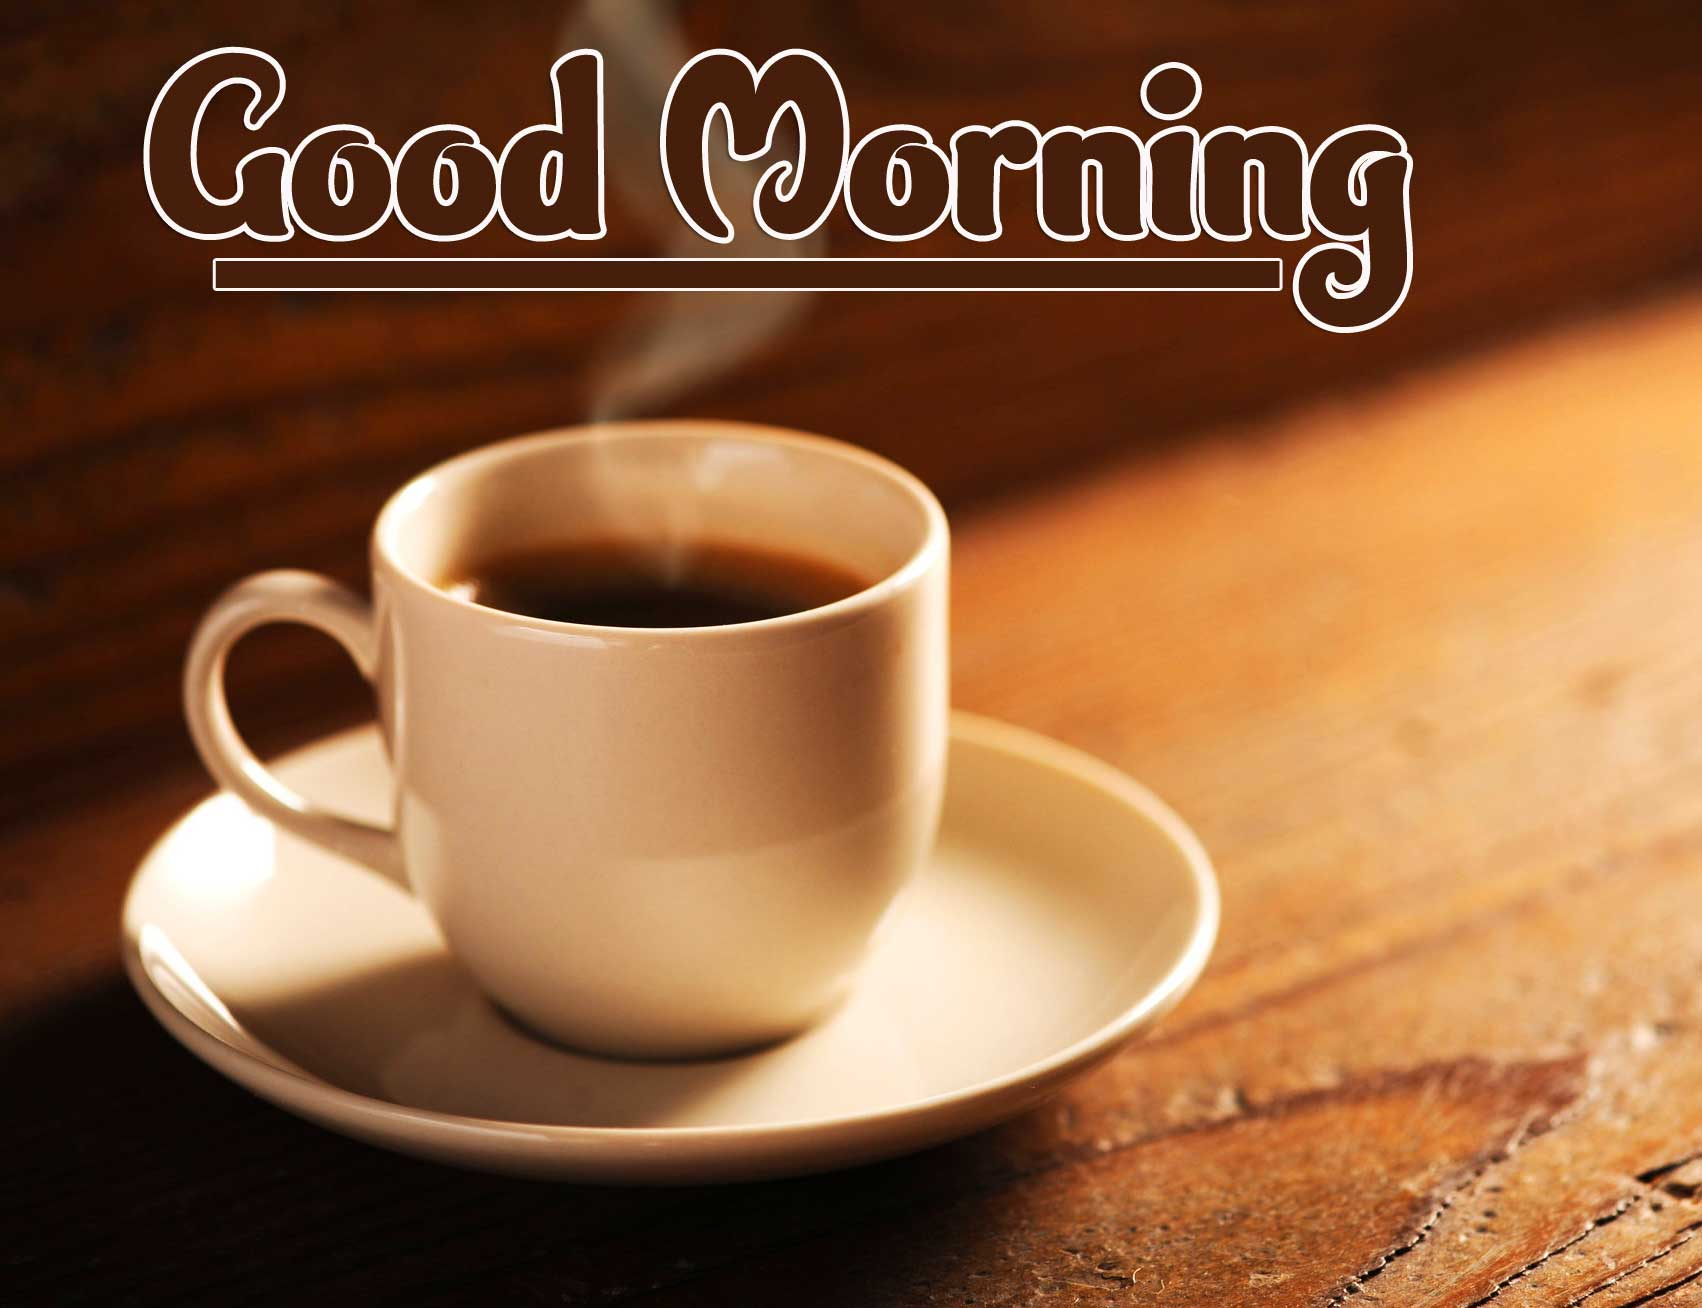 1080 p Good Morning Wallpaper Pics pictures Download